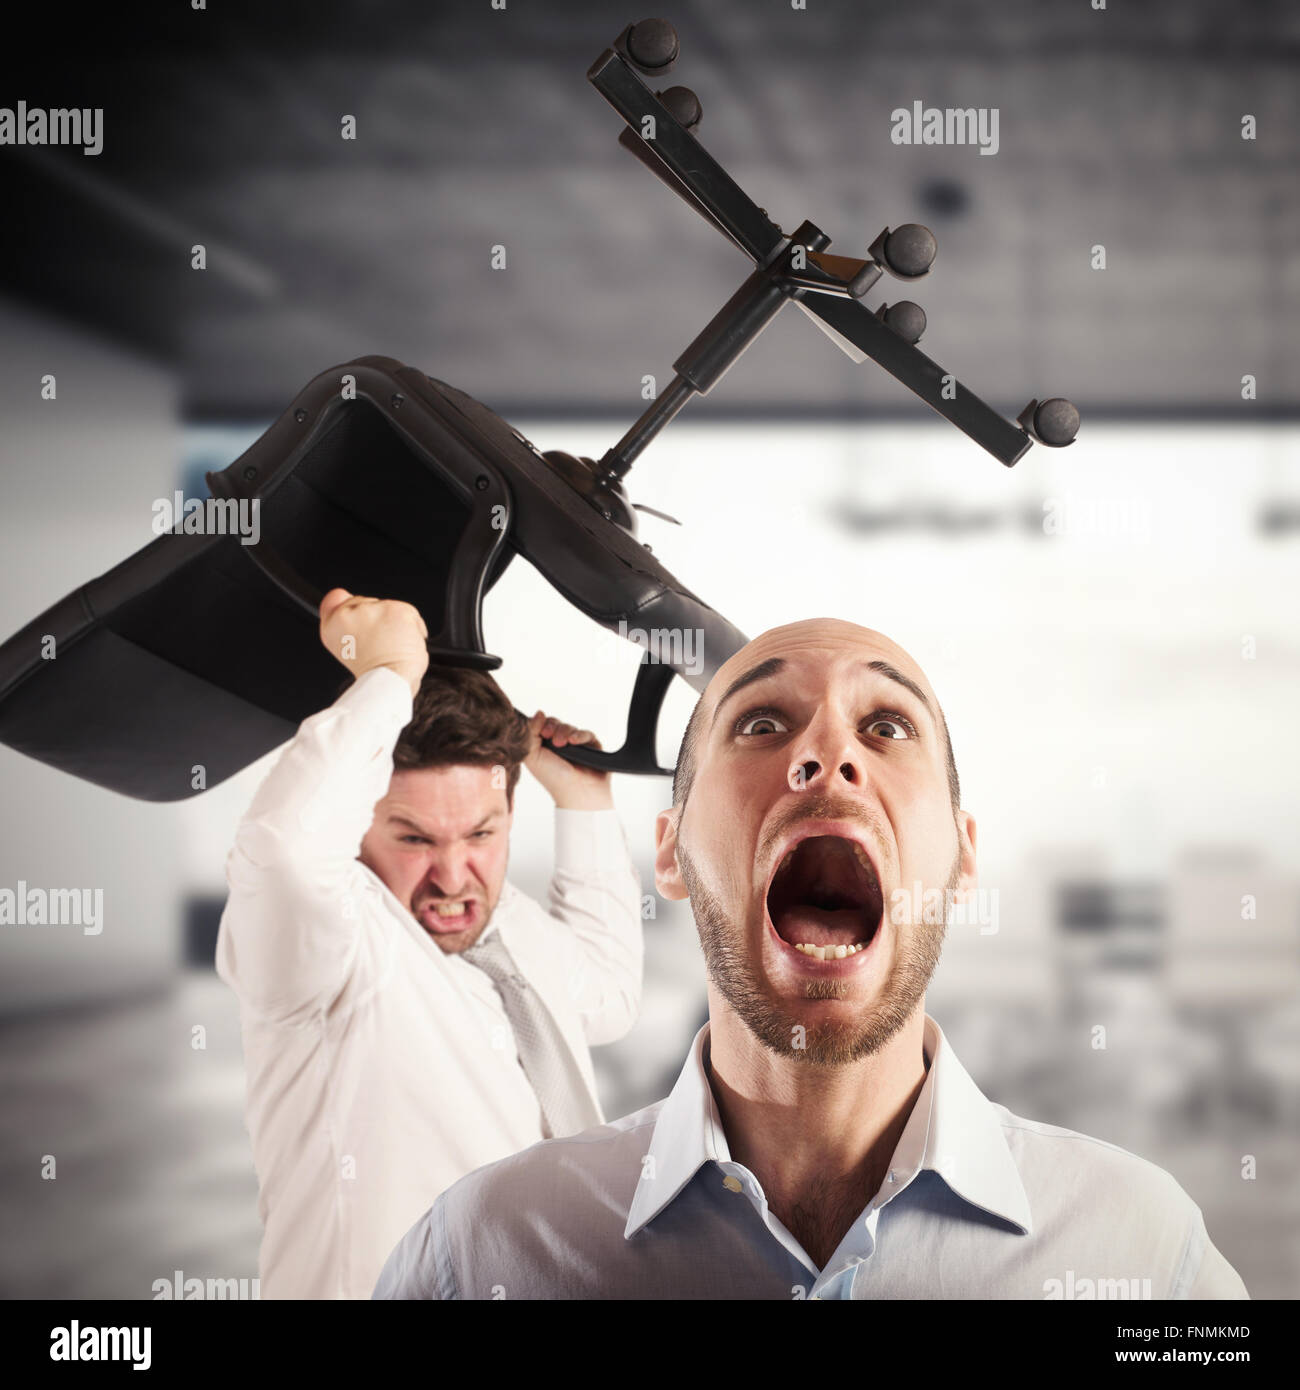 Tension in the office - Stock Image